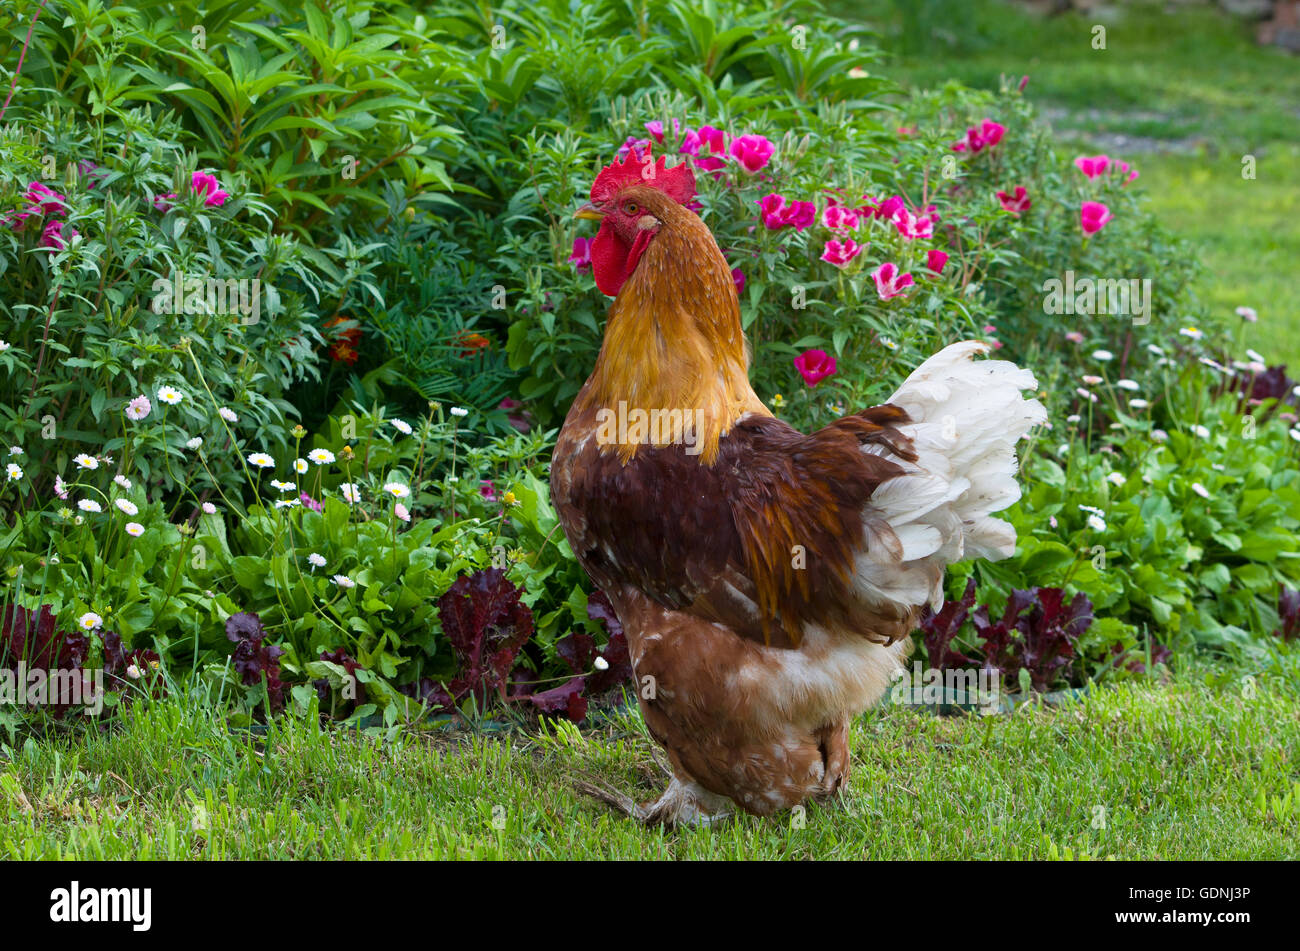 Poultry rooster thoroughbred motley beautiful, bird, breed, economy, farmer, farming, house, motley, poultry farming, - Stock Image